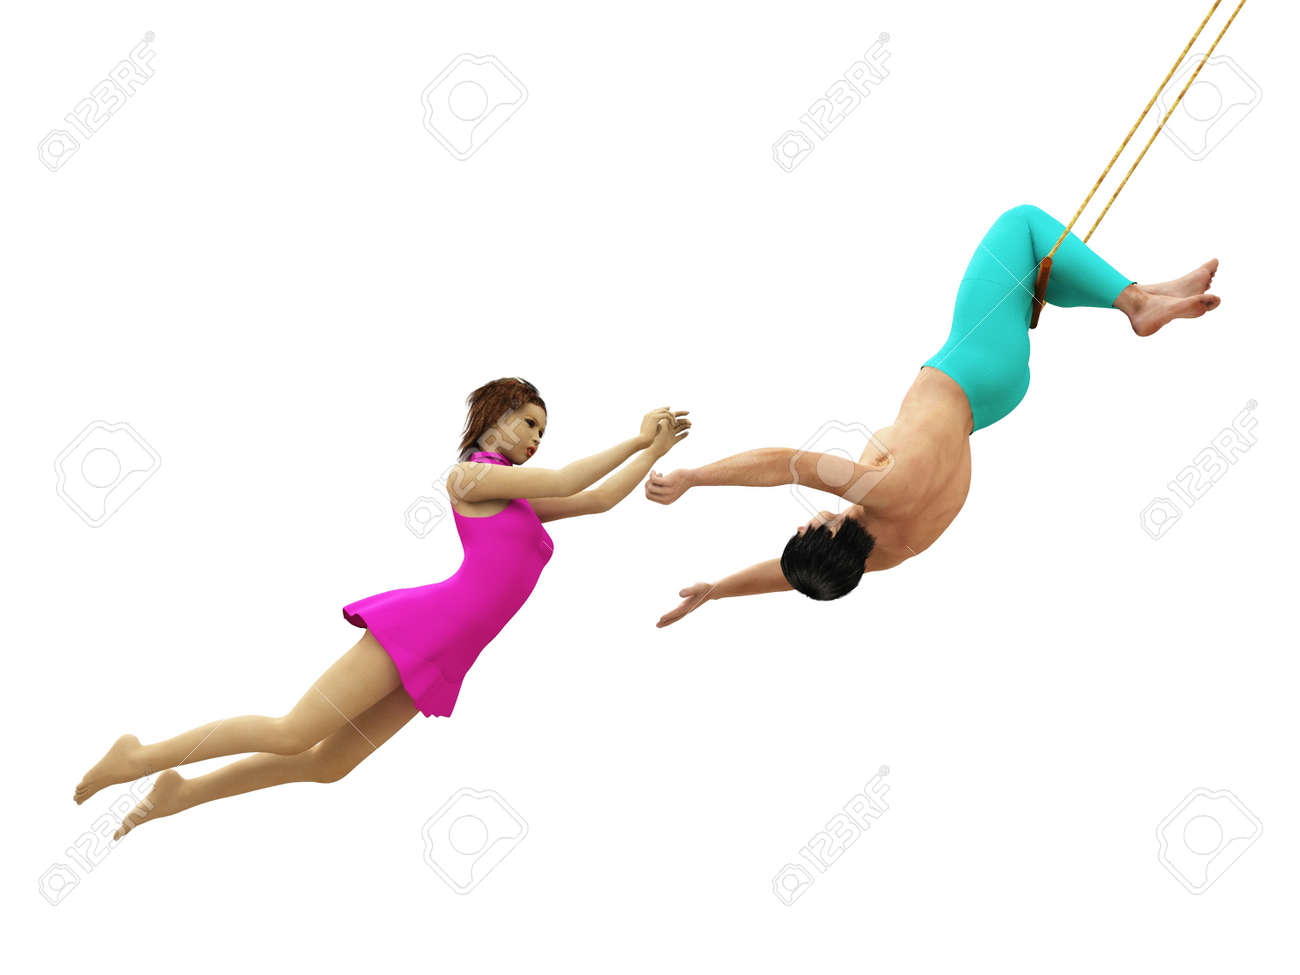 Male catcher prepares to catch female flying trapeze artist, isolated on white Stock Photo - 14048288